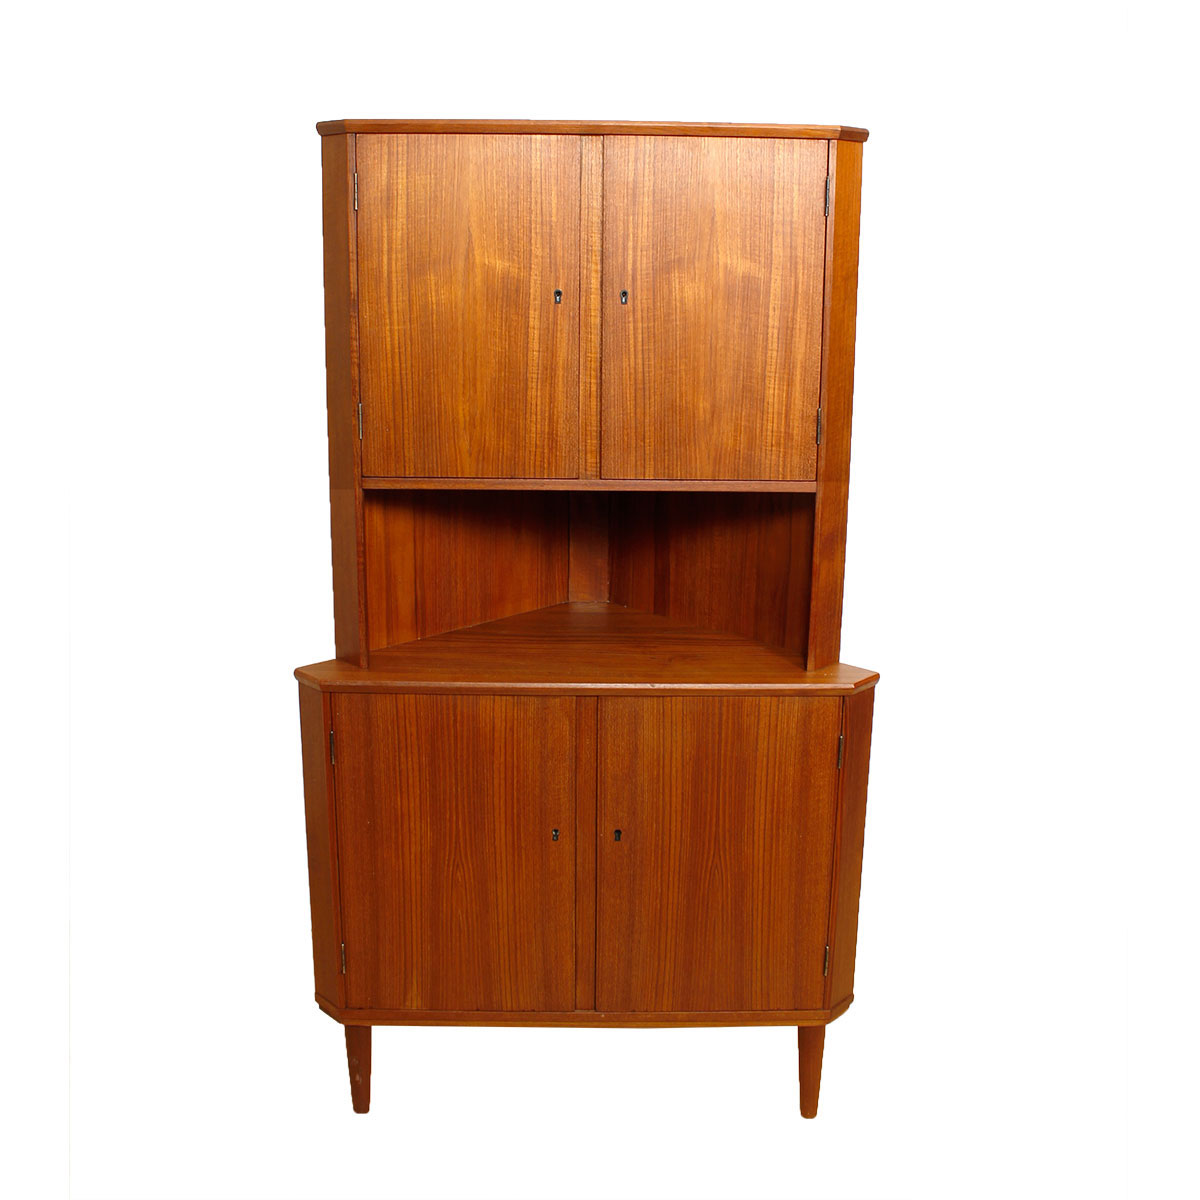 Lockable Cabinet File Cabinet 2 Drawer Locking Key Cabinets Cobra Key Systems Tamper Proof Key